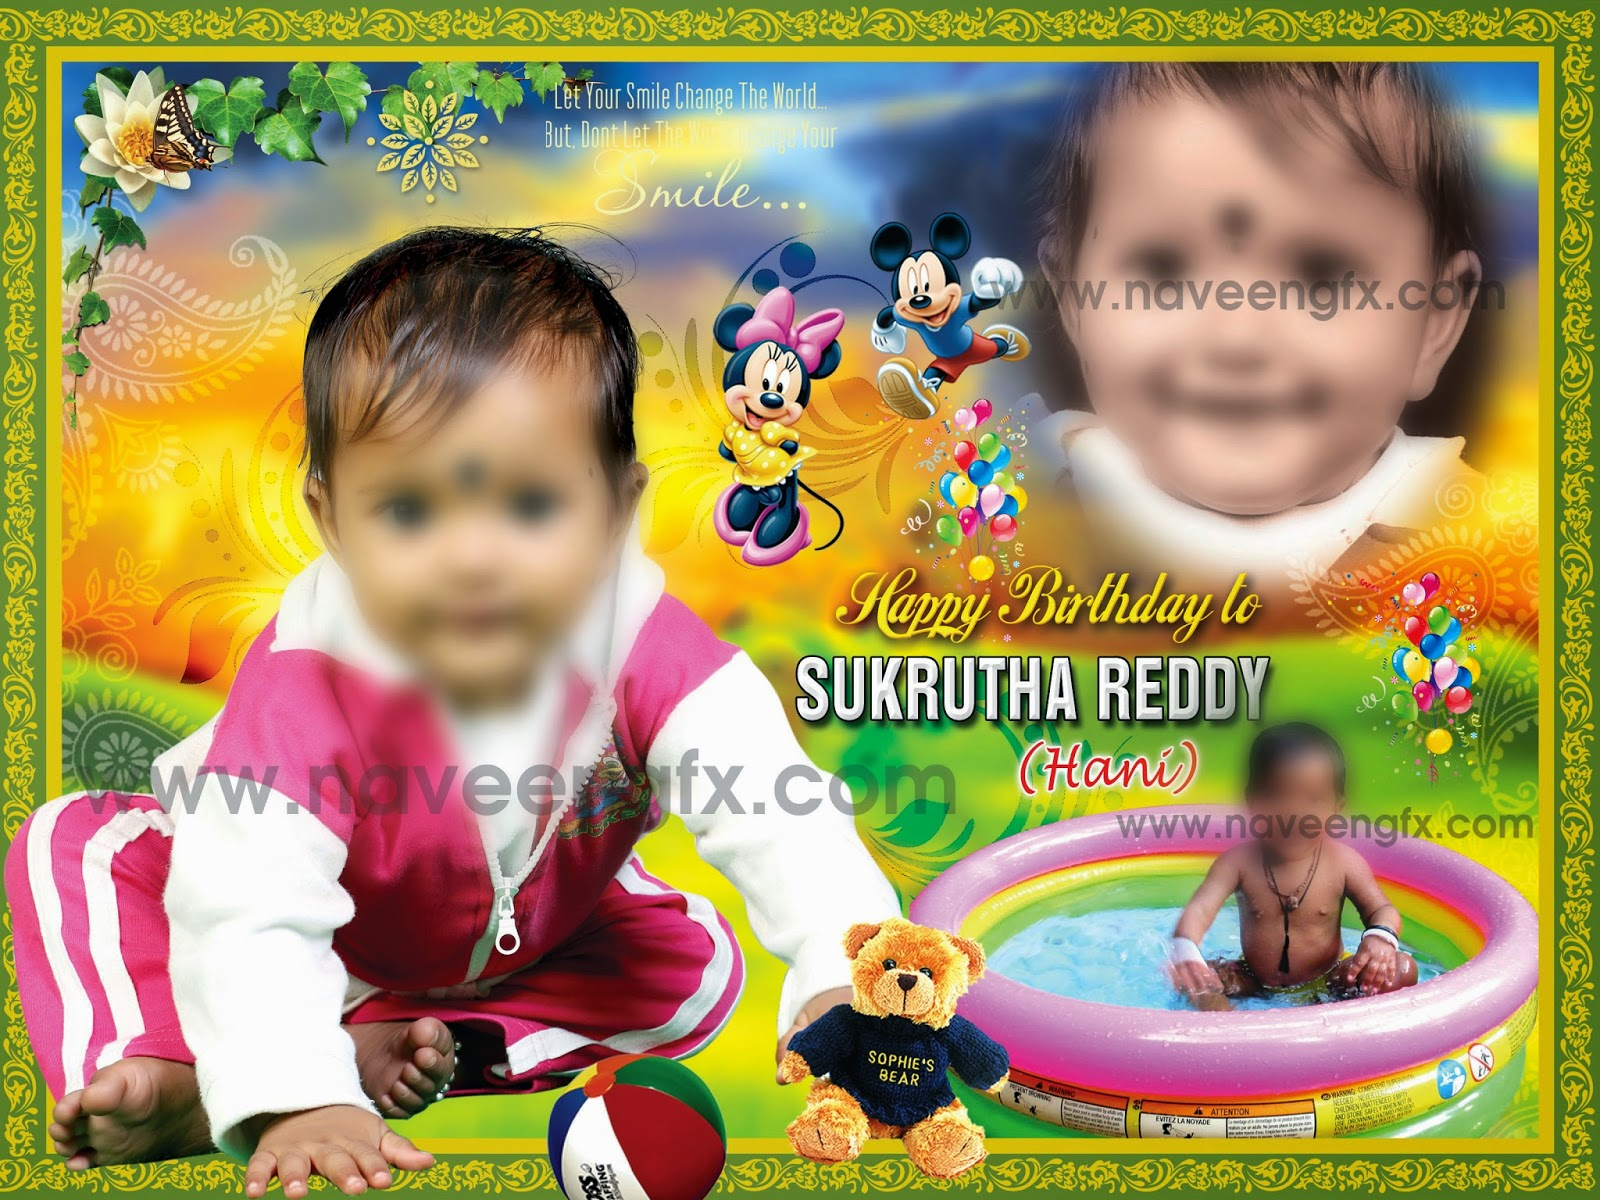 Kids Birthday Invitations Templates Design Naveengfx - Birthday invitation letter in telugu